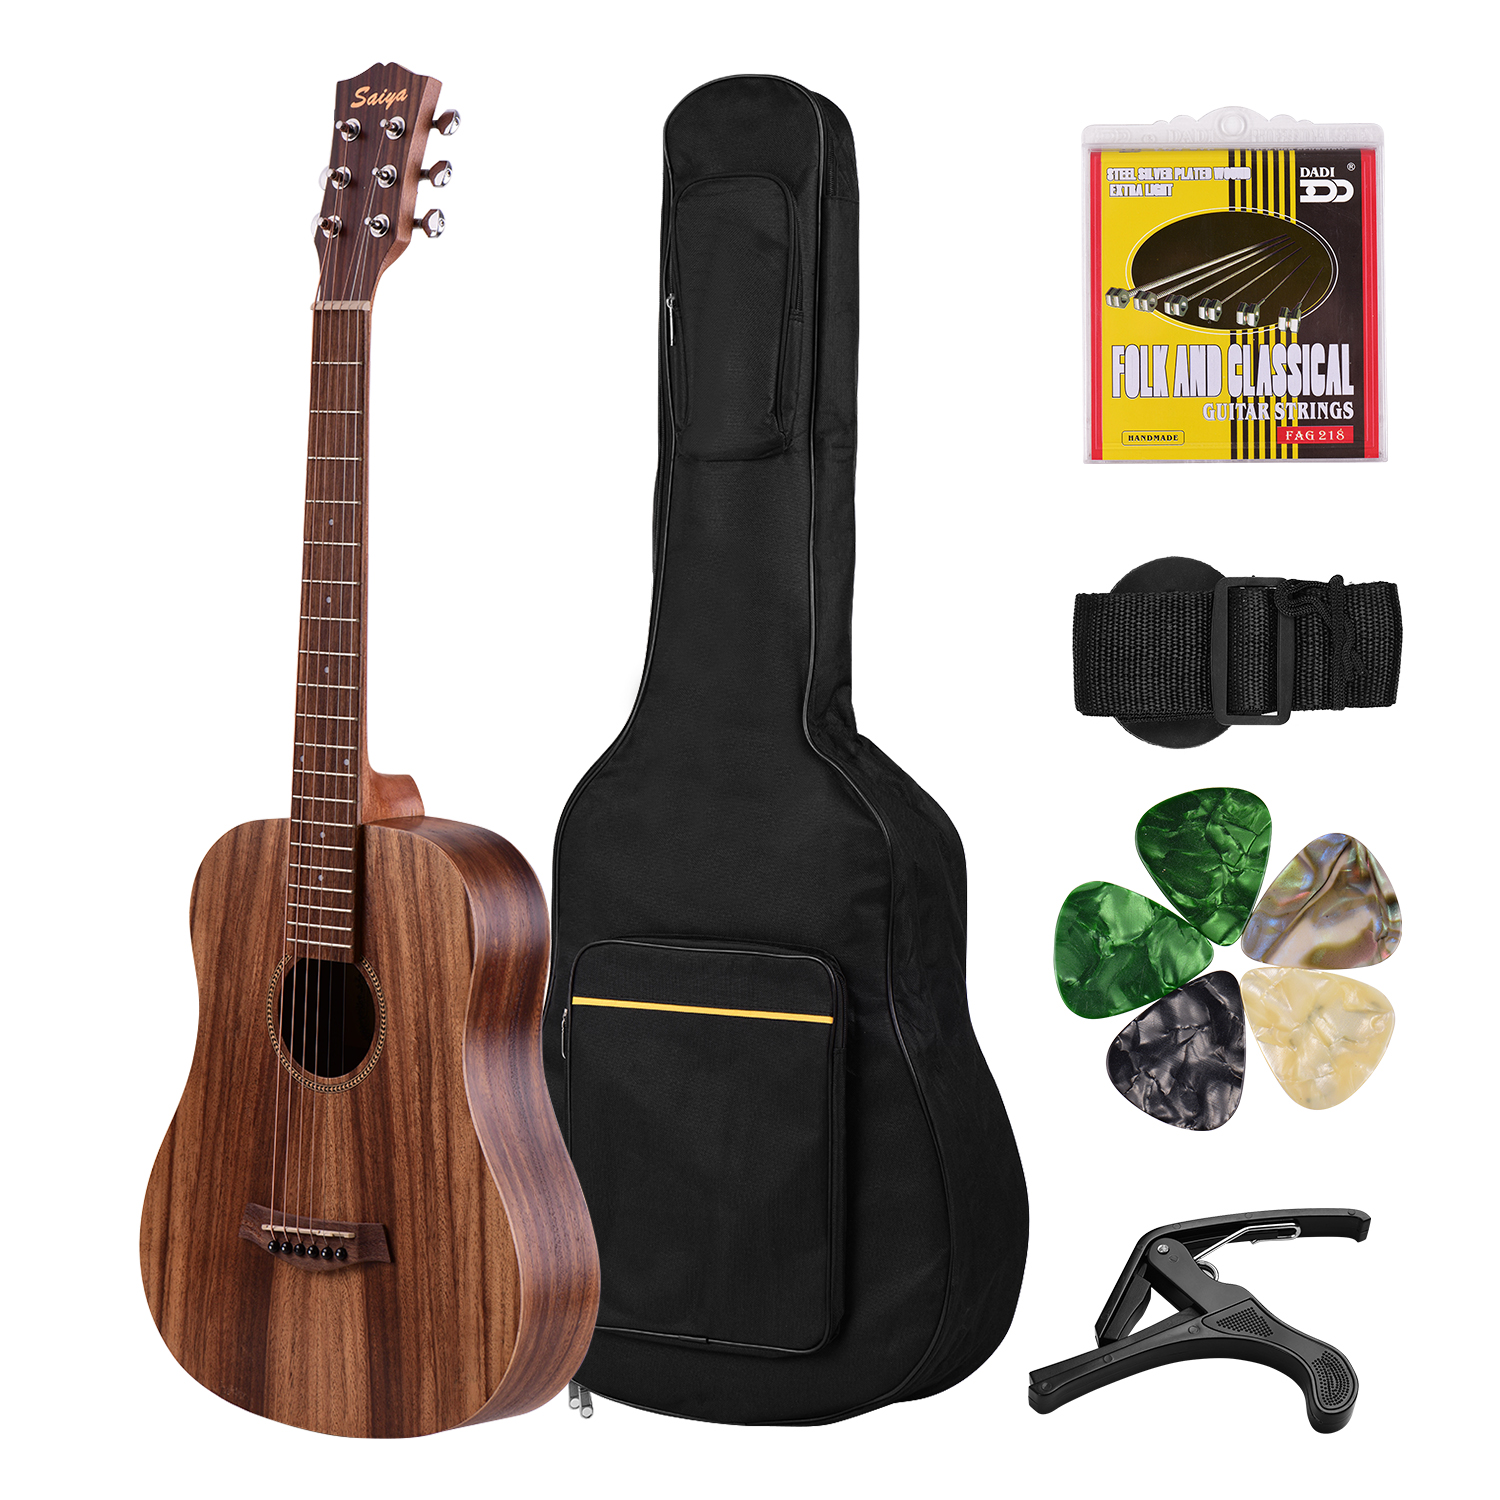 Acoustic Guitar 34 Inch Teakwood Material Guitar with Gig Bag Strap Spare Strings Capo Picks Guitars Kit for Beginners image